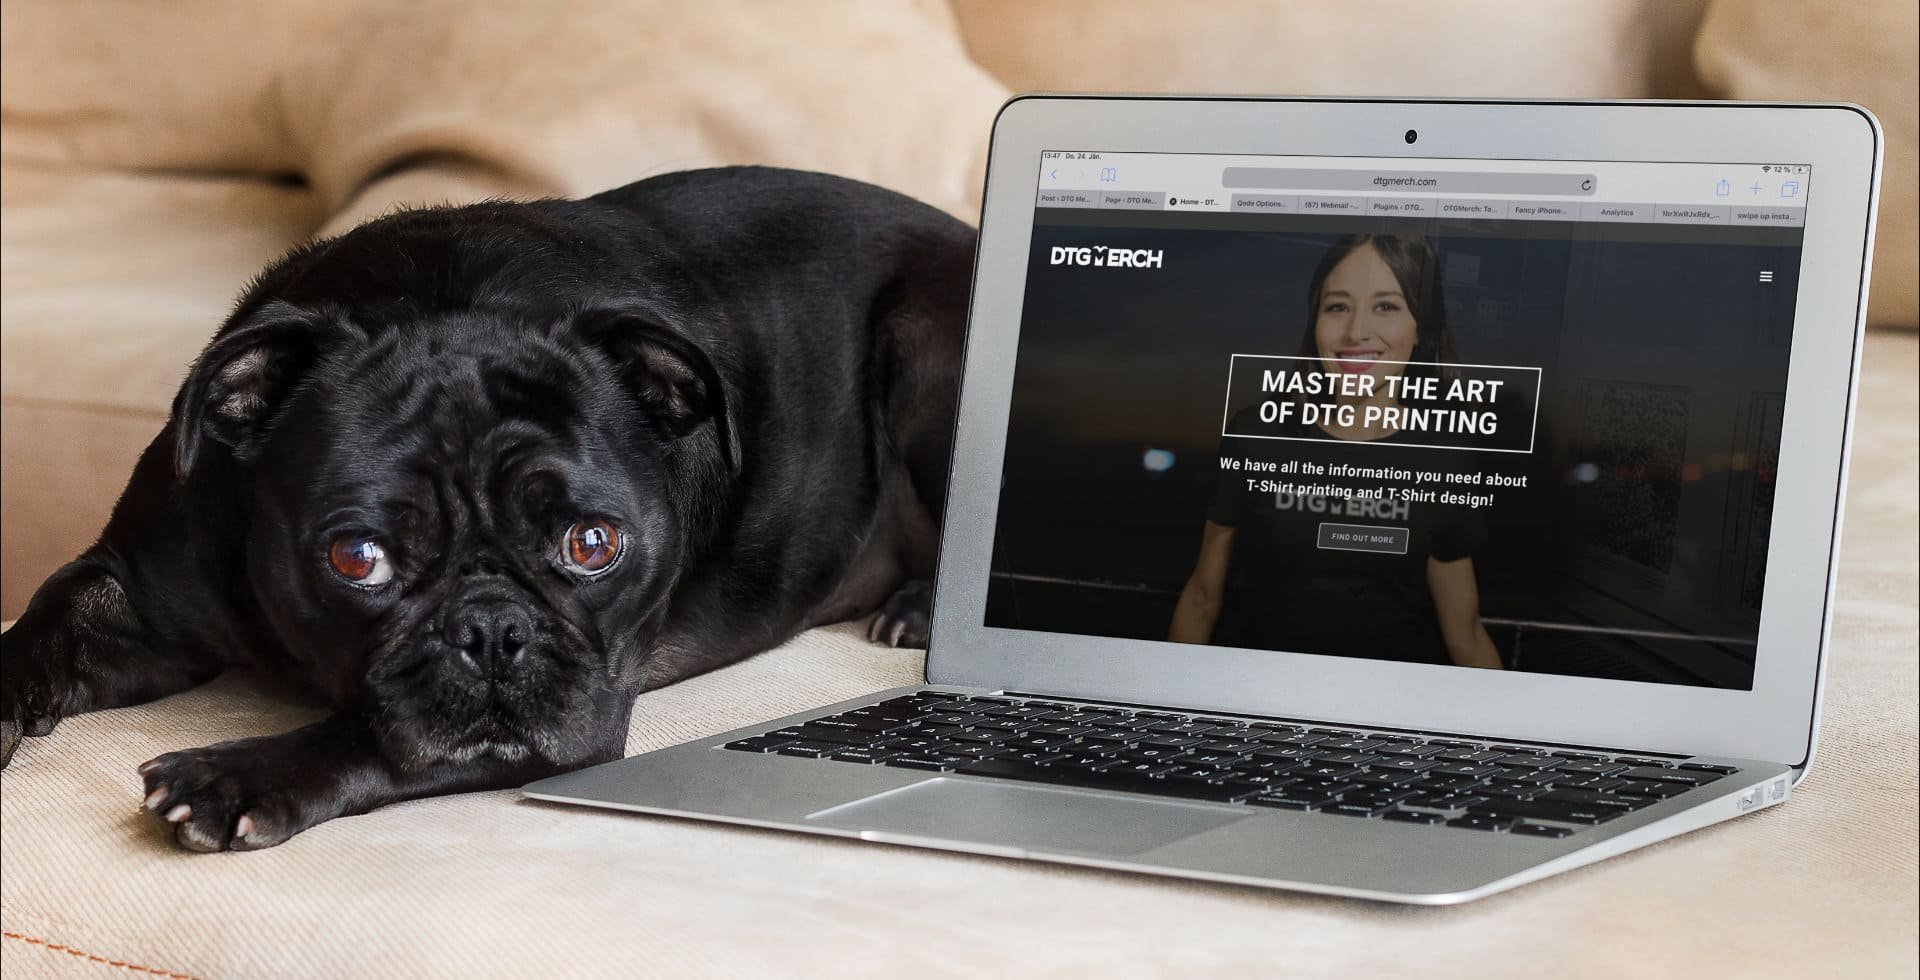 Black dog next to a lap top computer. On screen, the DTG Merch blog page.